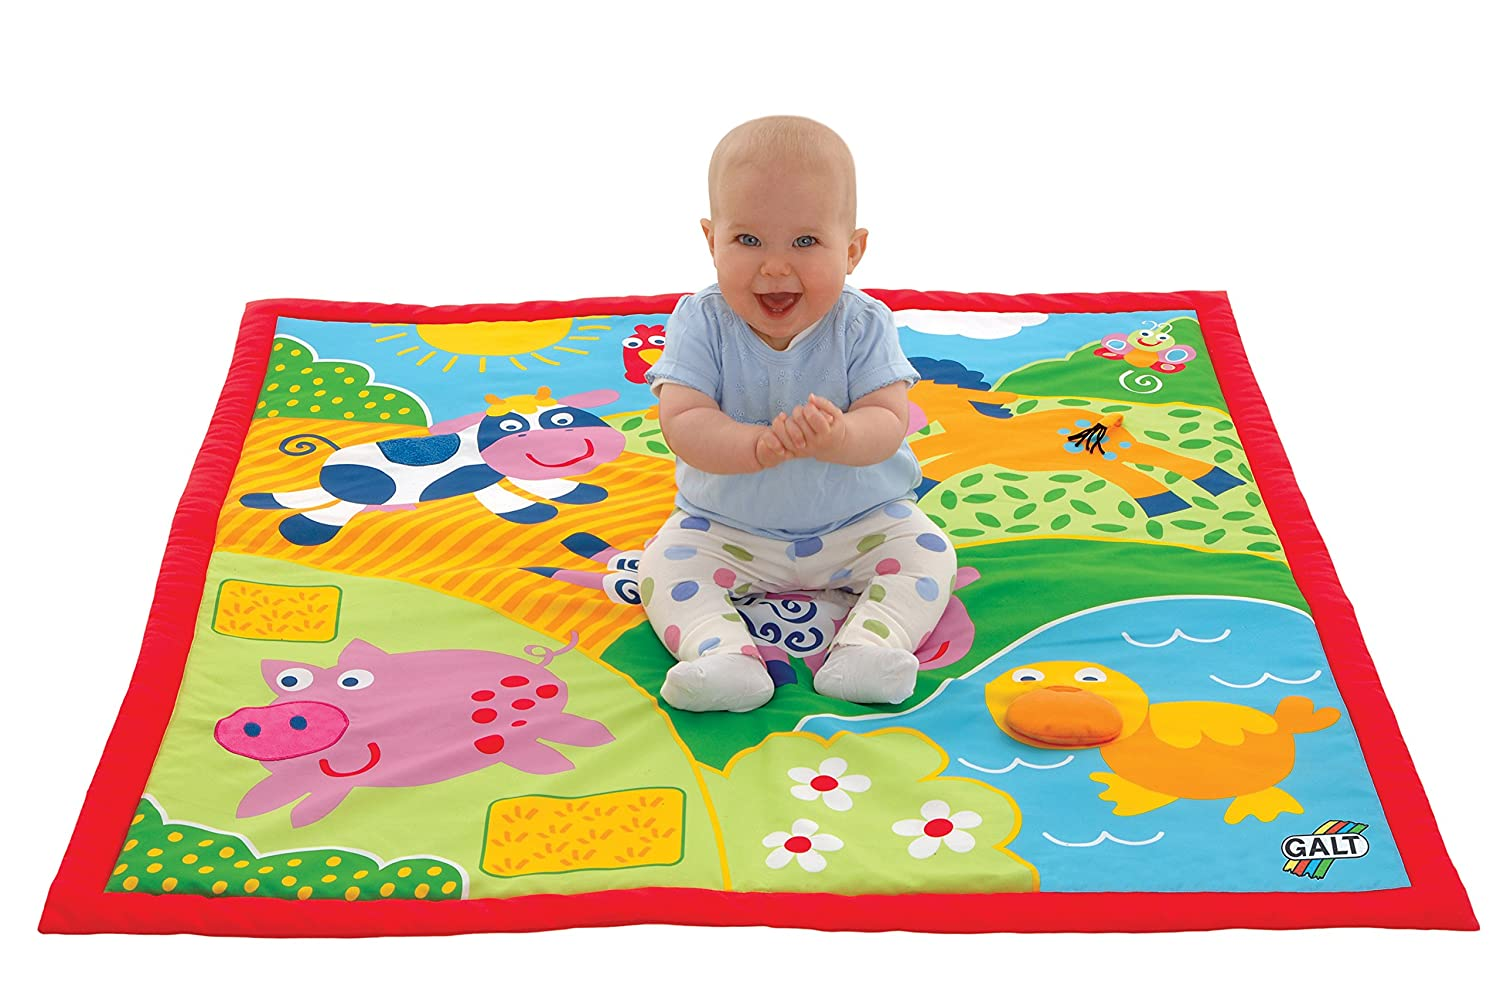 Galt Large Playmat Farm Multi-Sensory - Over 3 Feet (39